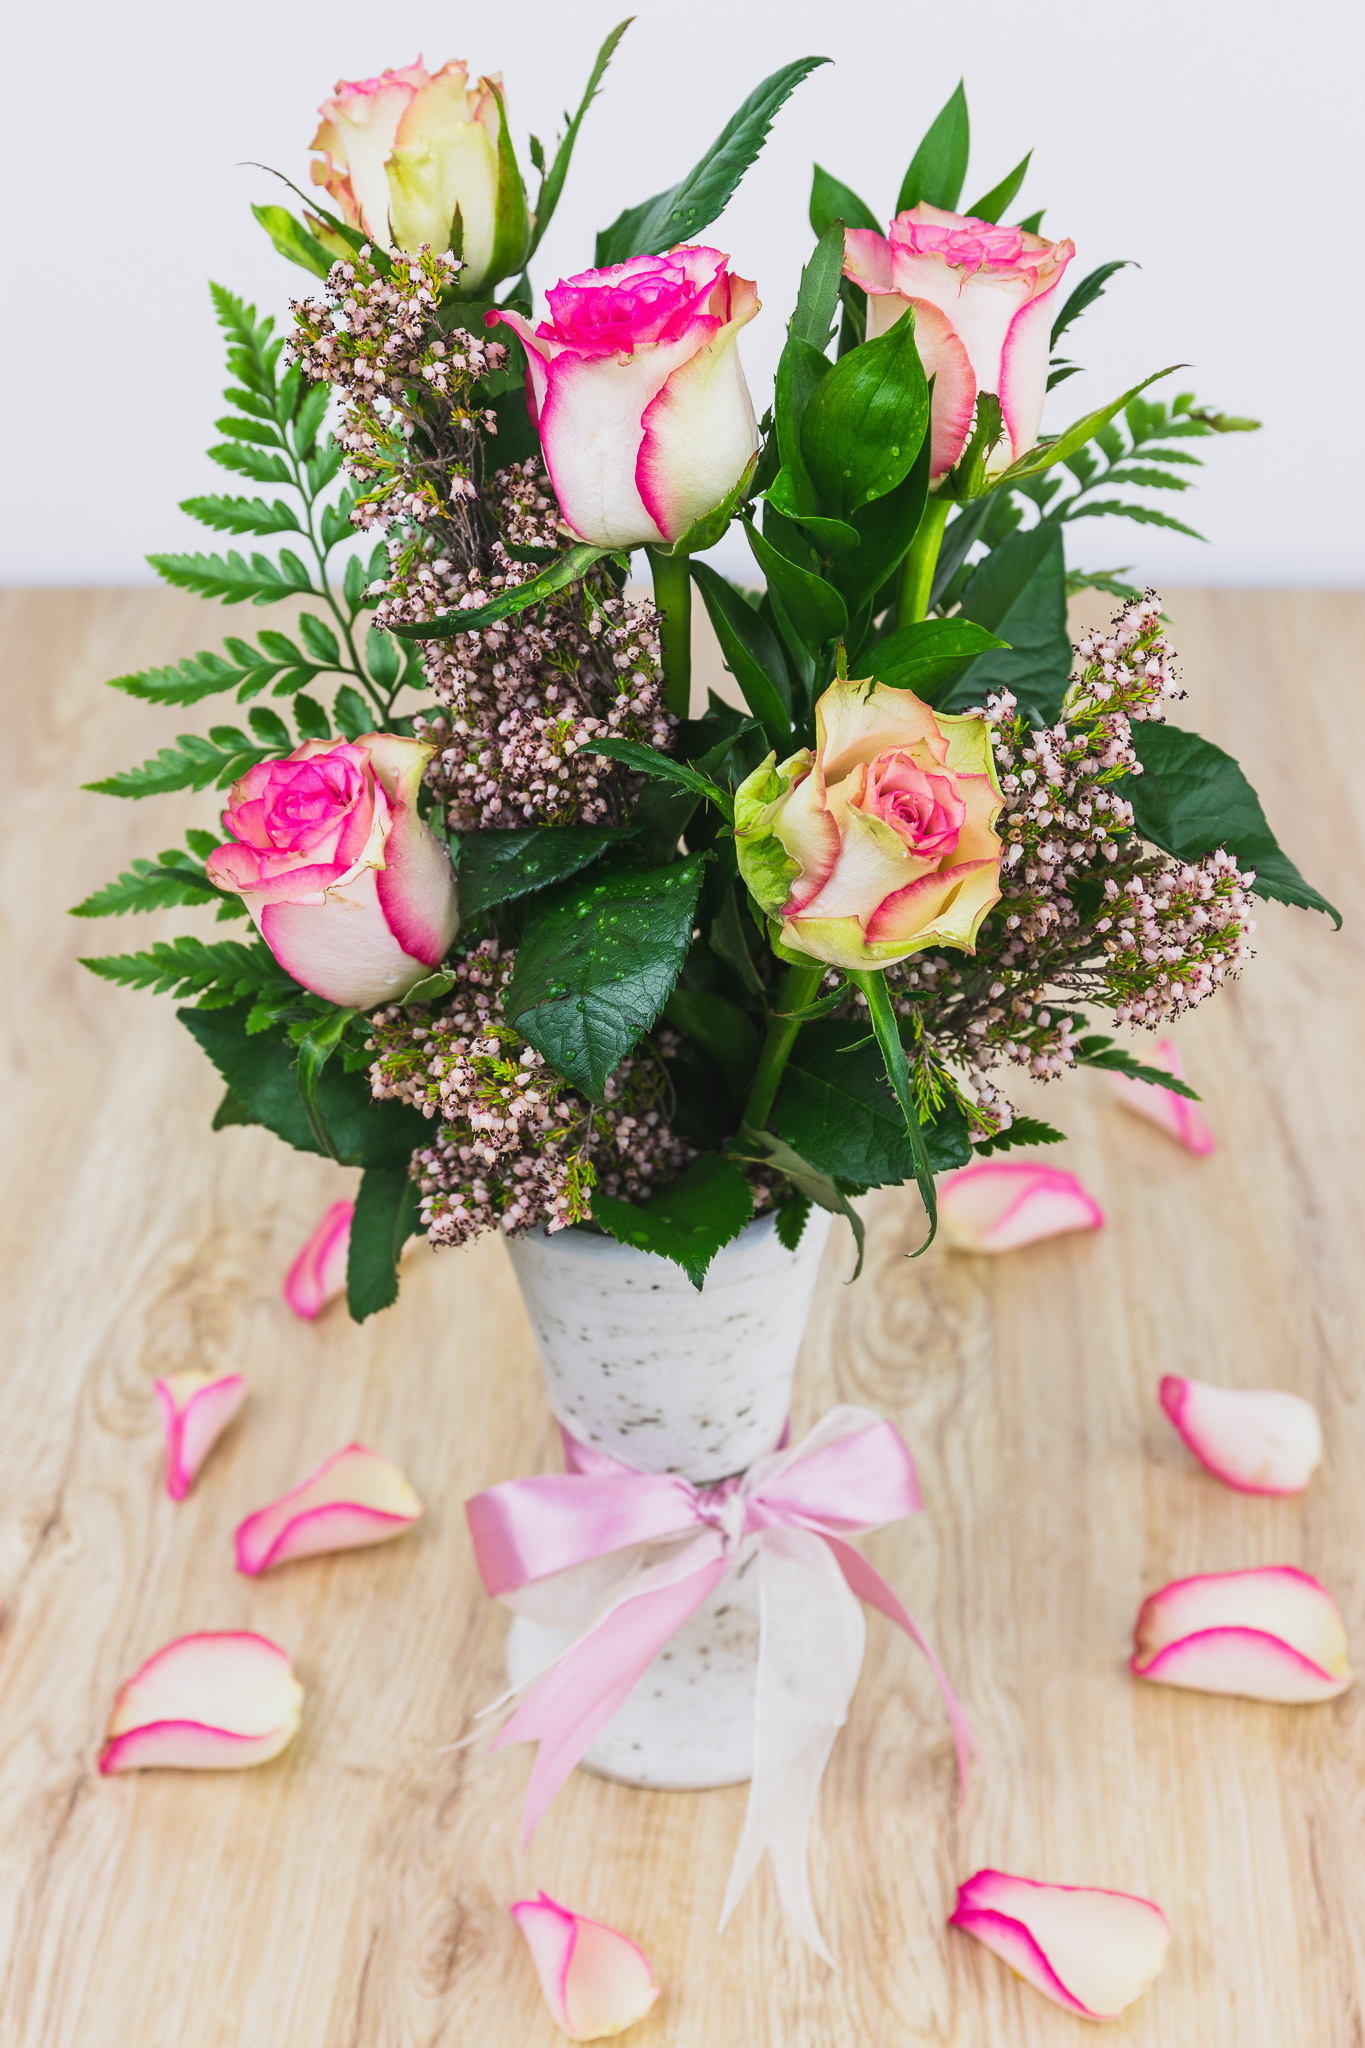 PETITE SURPRISE FLOWER ARRANGEMENT